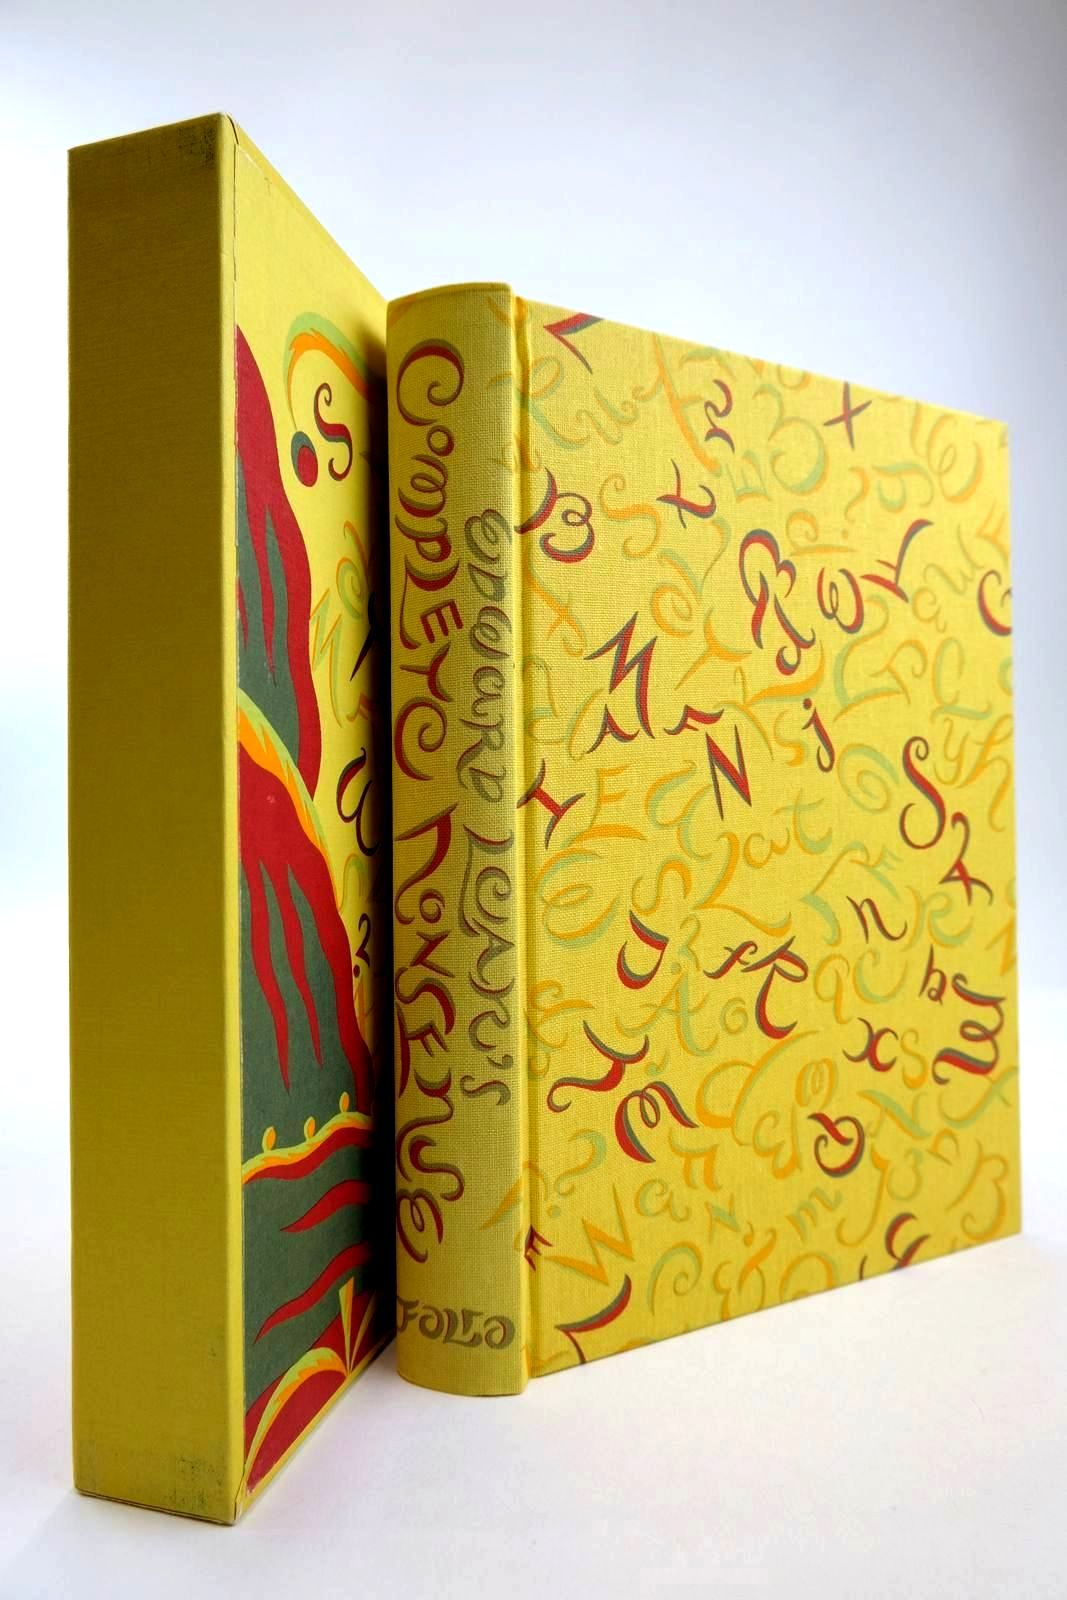 Photo of EDWARD LEAR'S COMPLETE NONSENSE written by Lear, Edward Blake, Quentin illustrated by Lear, Edward Beards, Richard published by Folio Society (STOCK CODE: 2133993)  for sale by Stella & Rose's Books